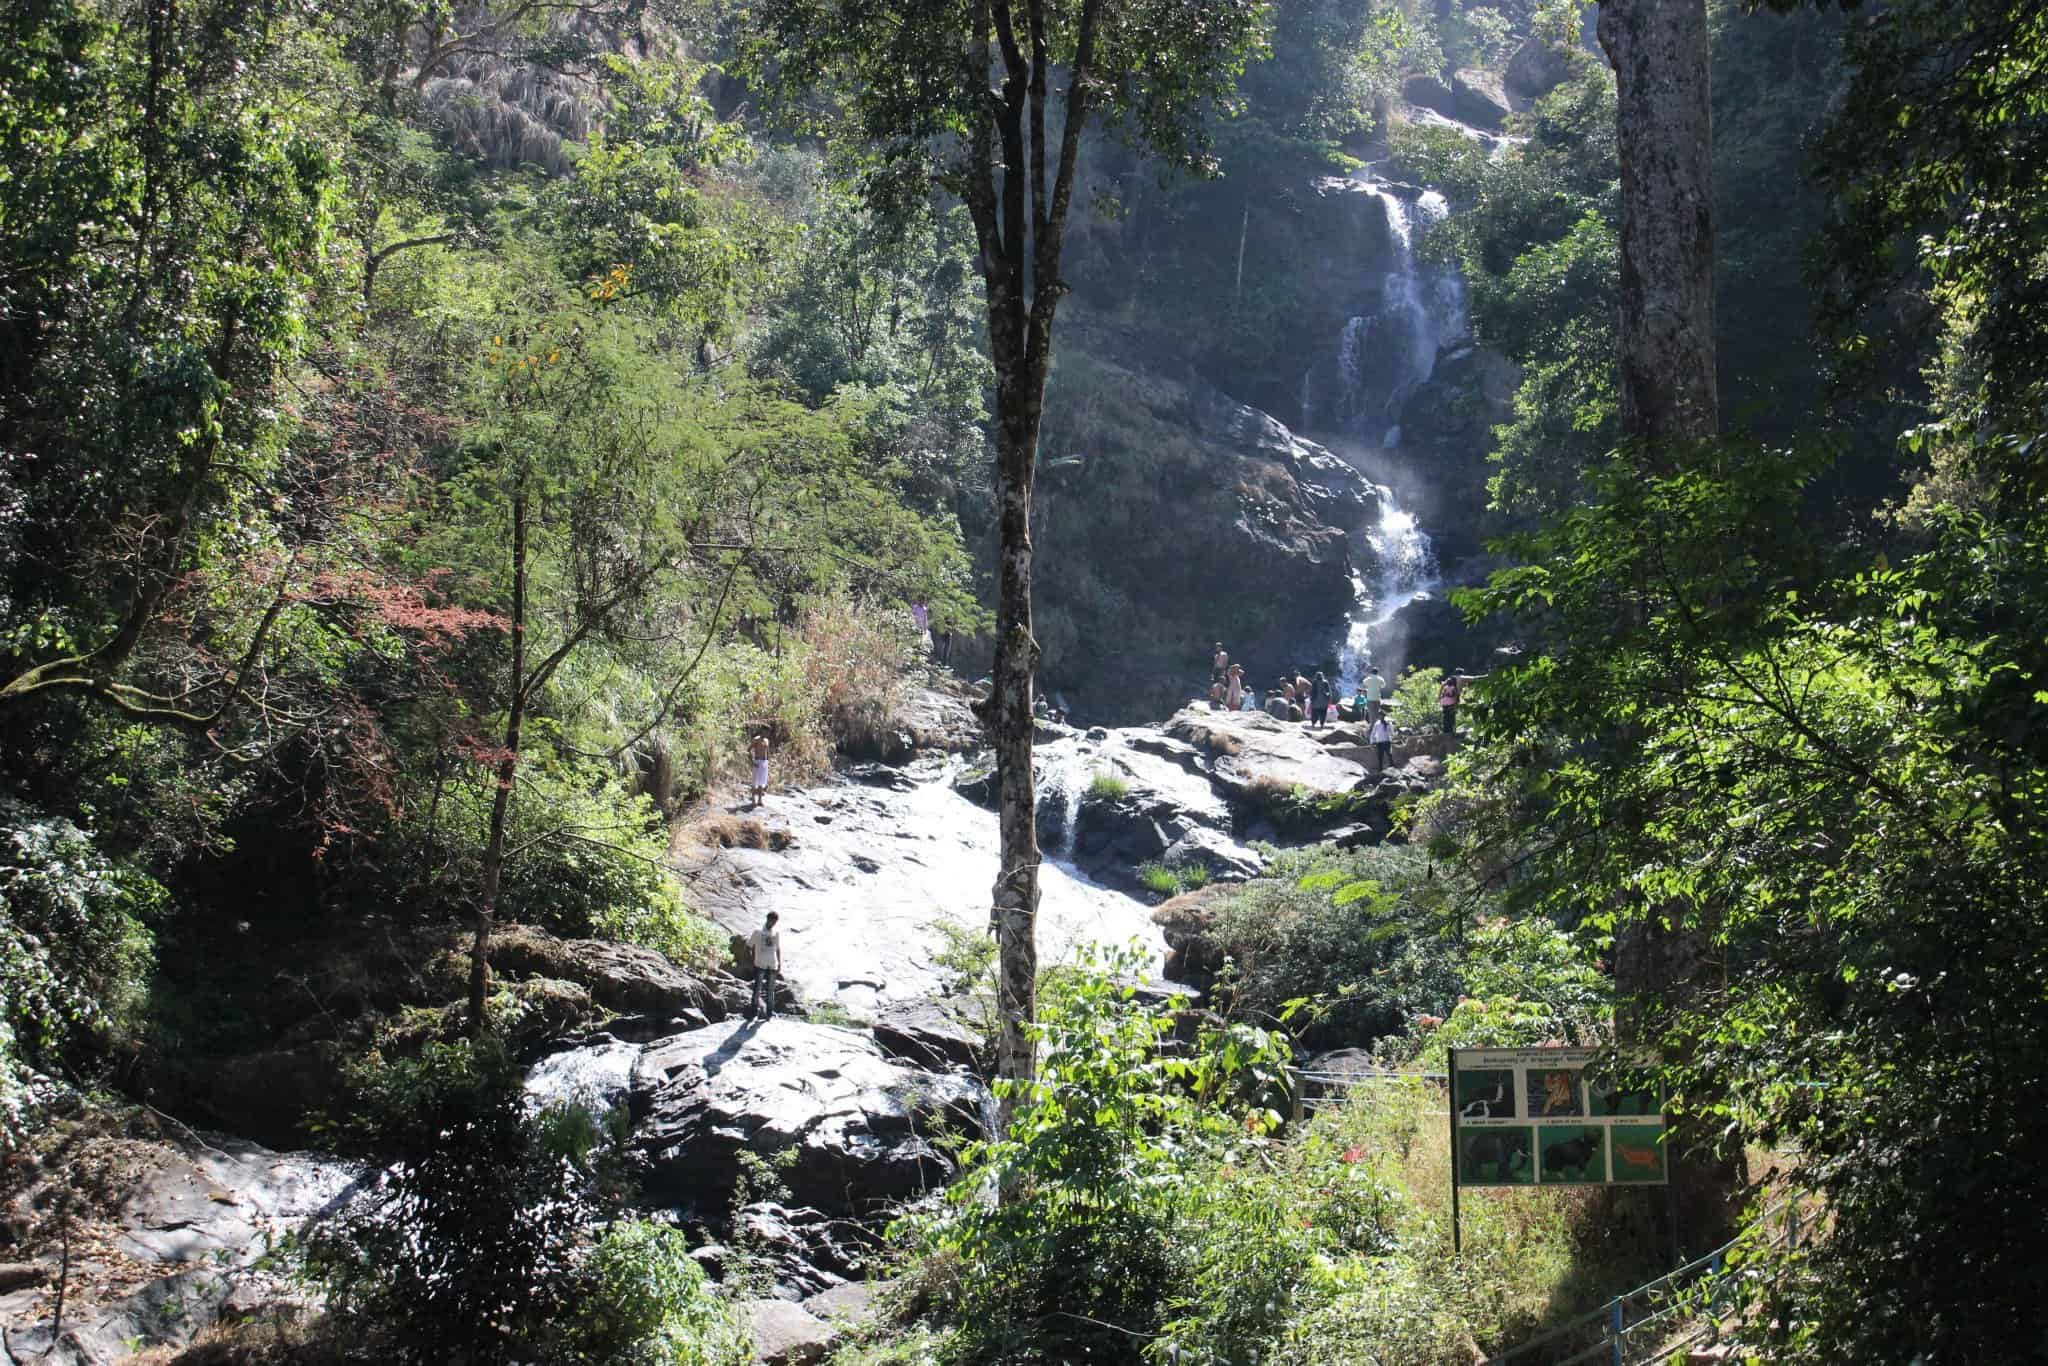 Nagarhole national park in Coorg, India